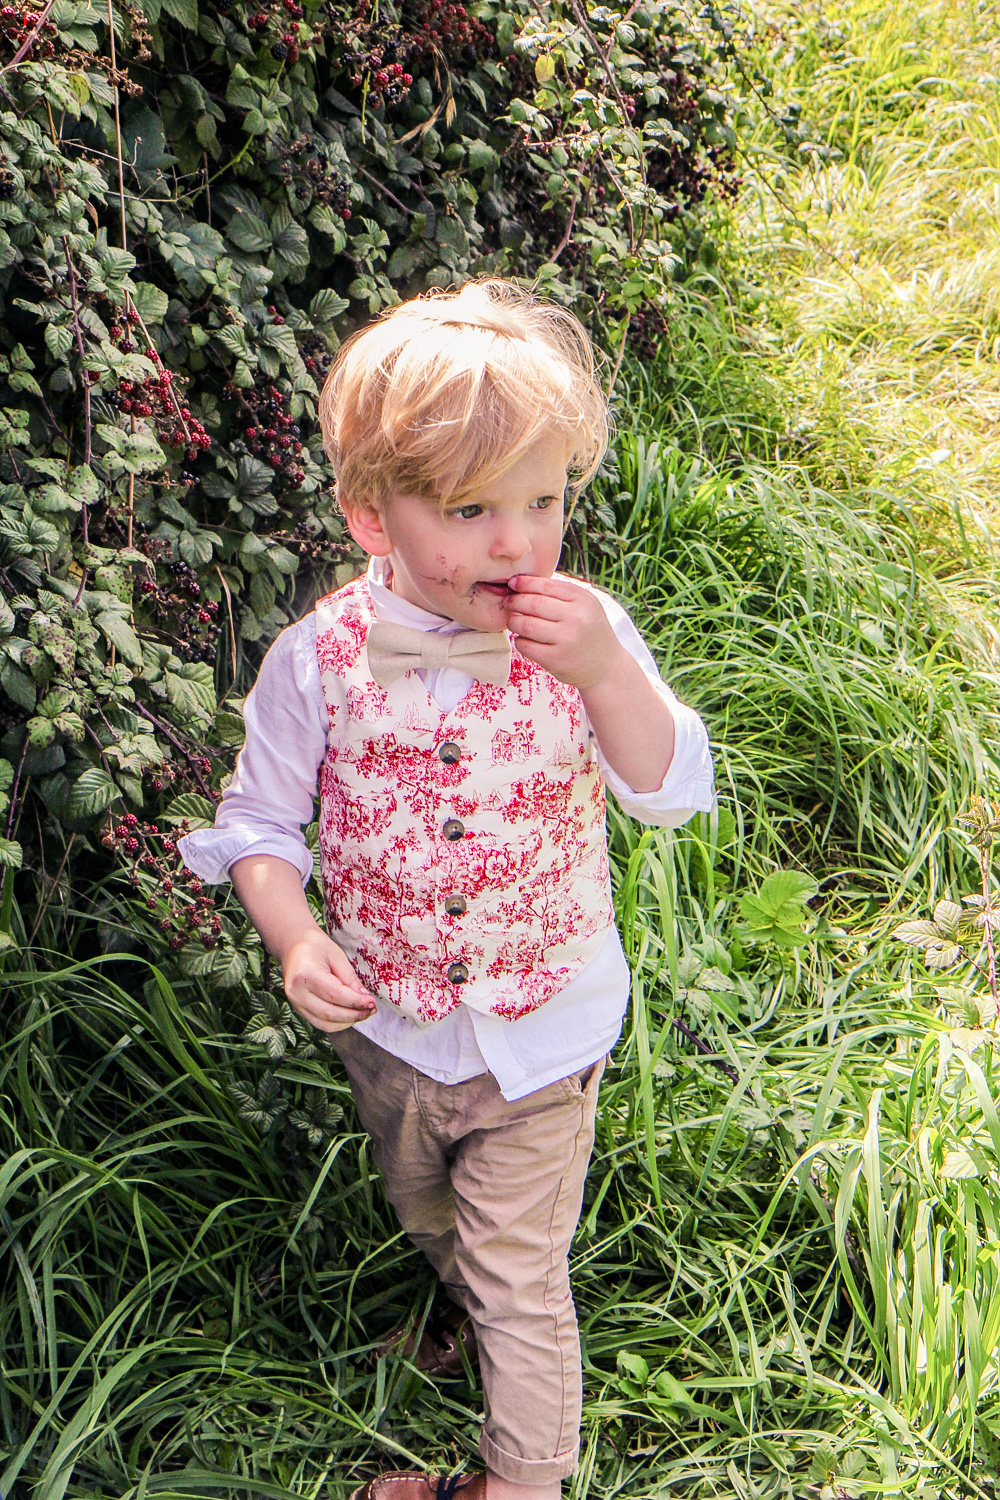 Little boy eating freshly picked blackberries